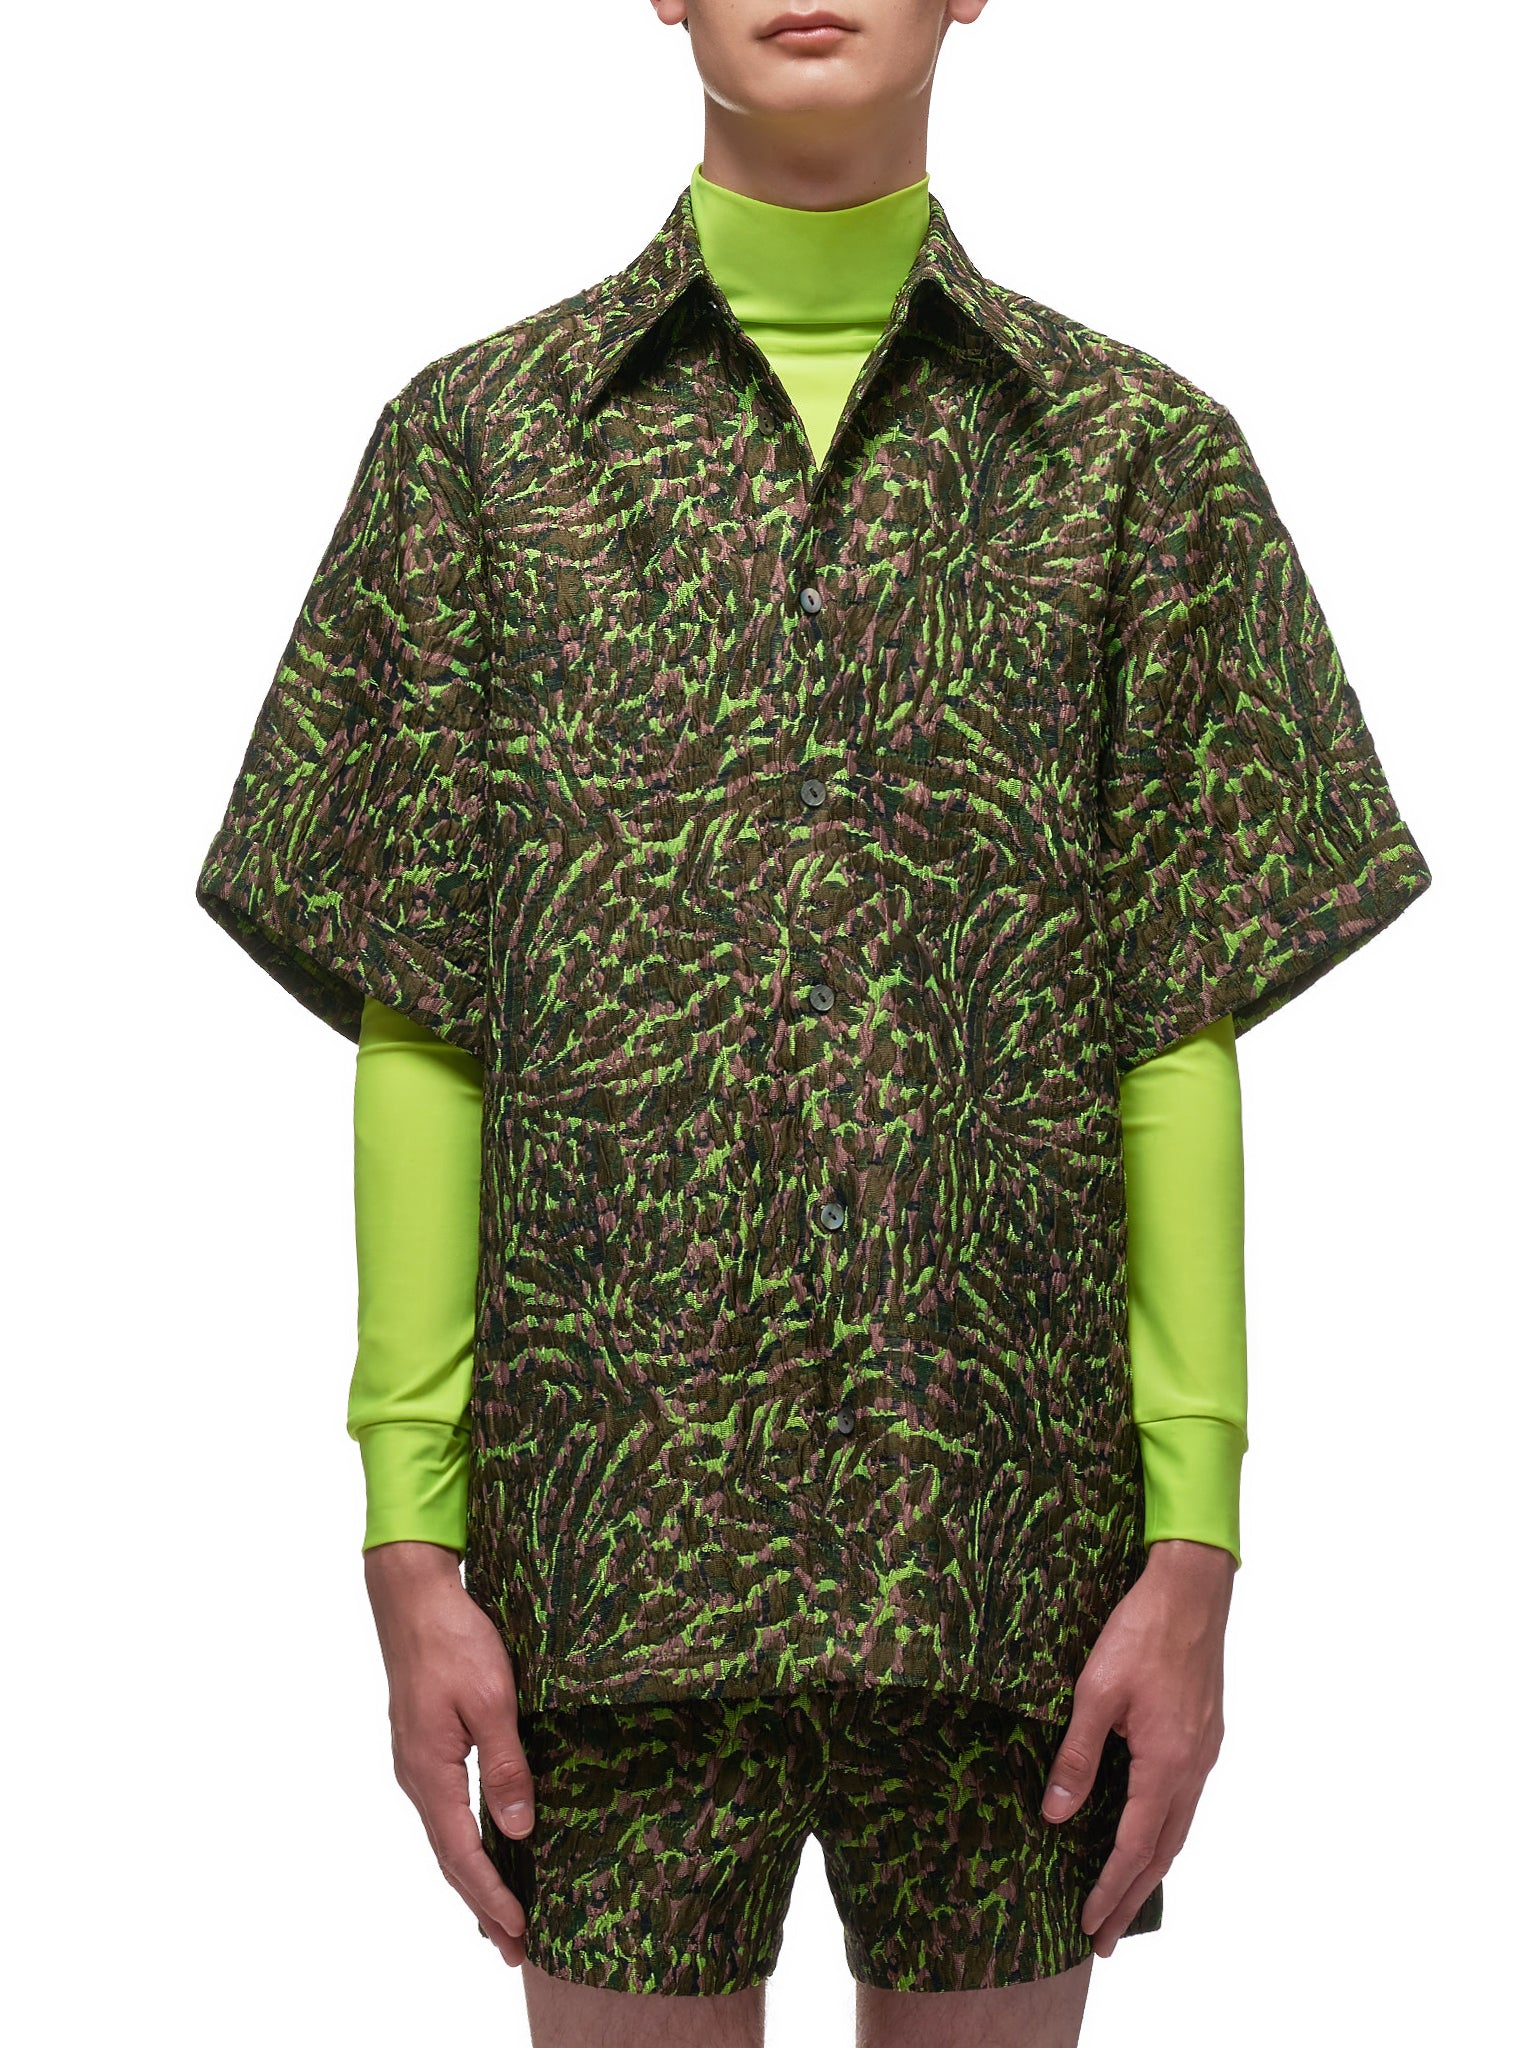 Peacock Cuffed Short Sleeve Shirt (004-06-RECYCLED-GREEN)